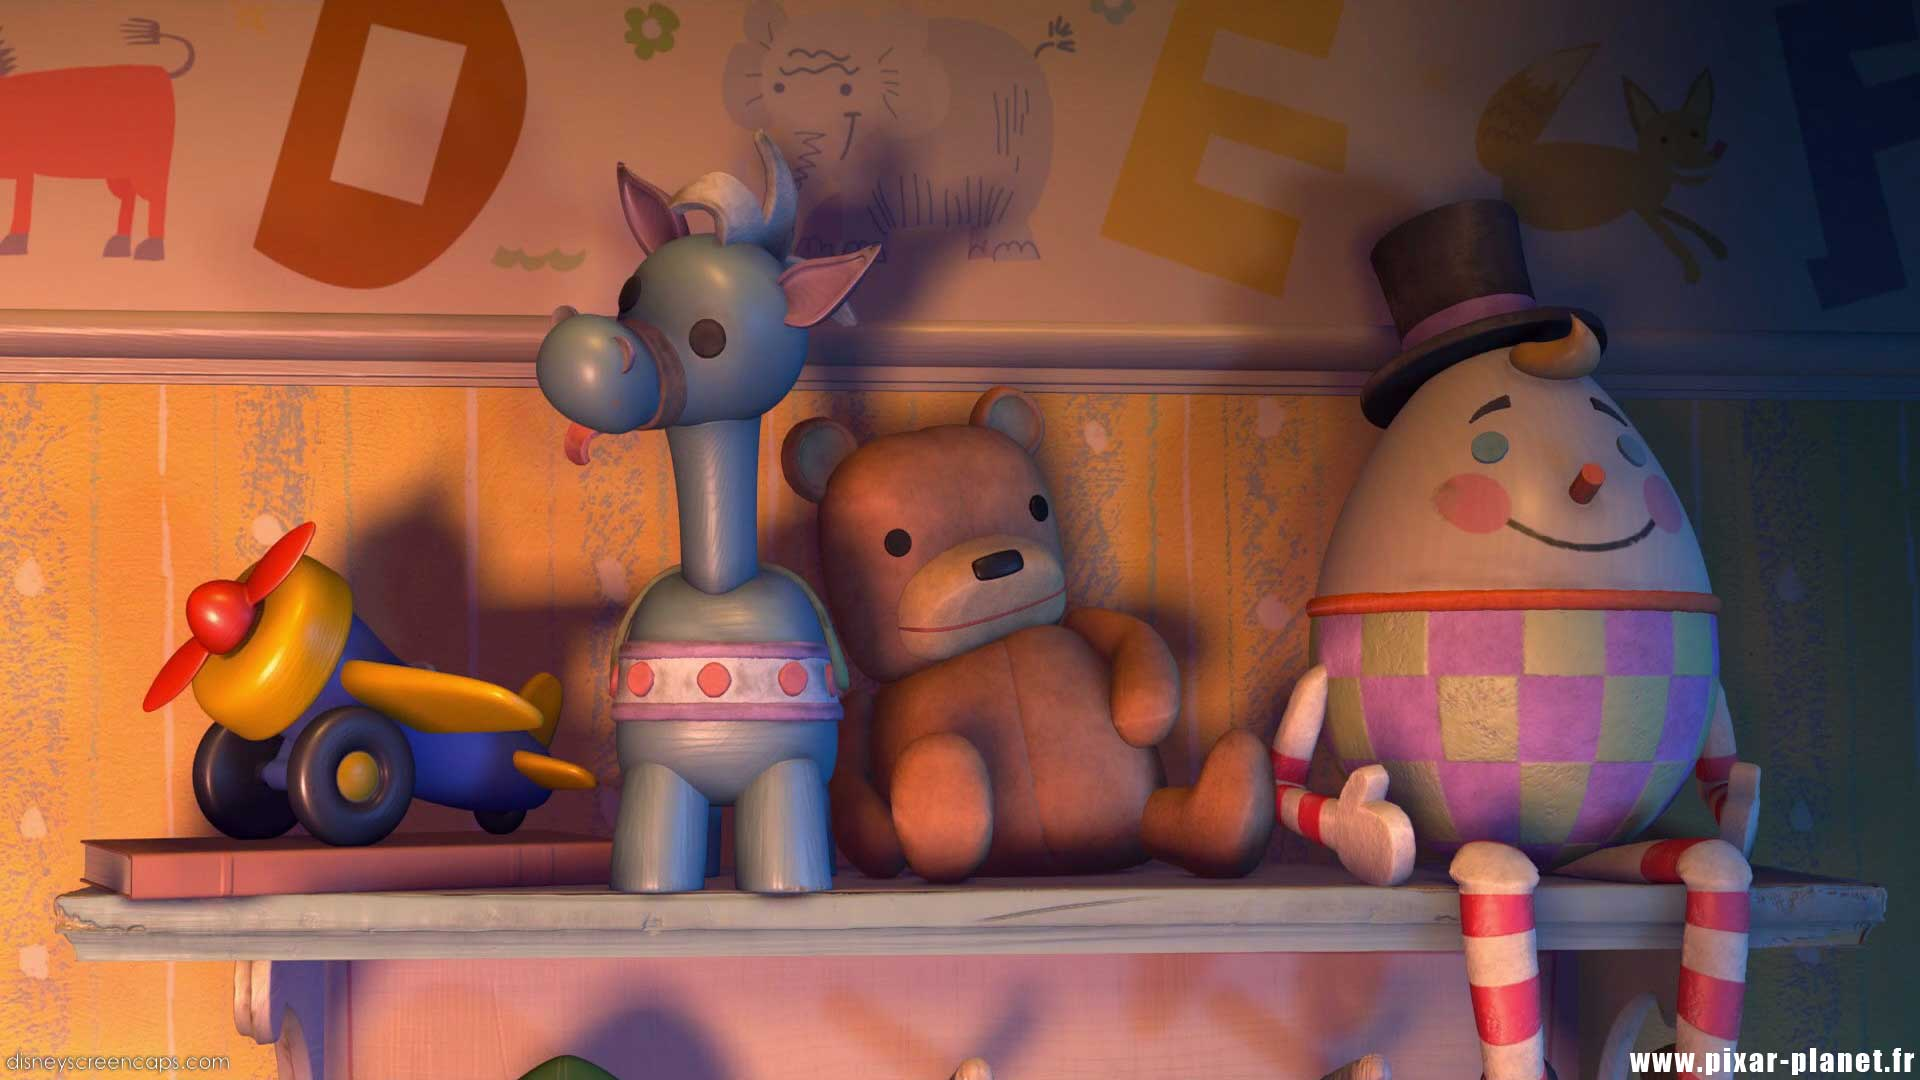 Shelf Wallpaper Iphone Monsters Inc Full Hd Wallpaper And Background Image